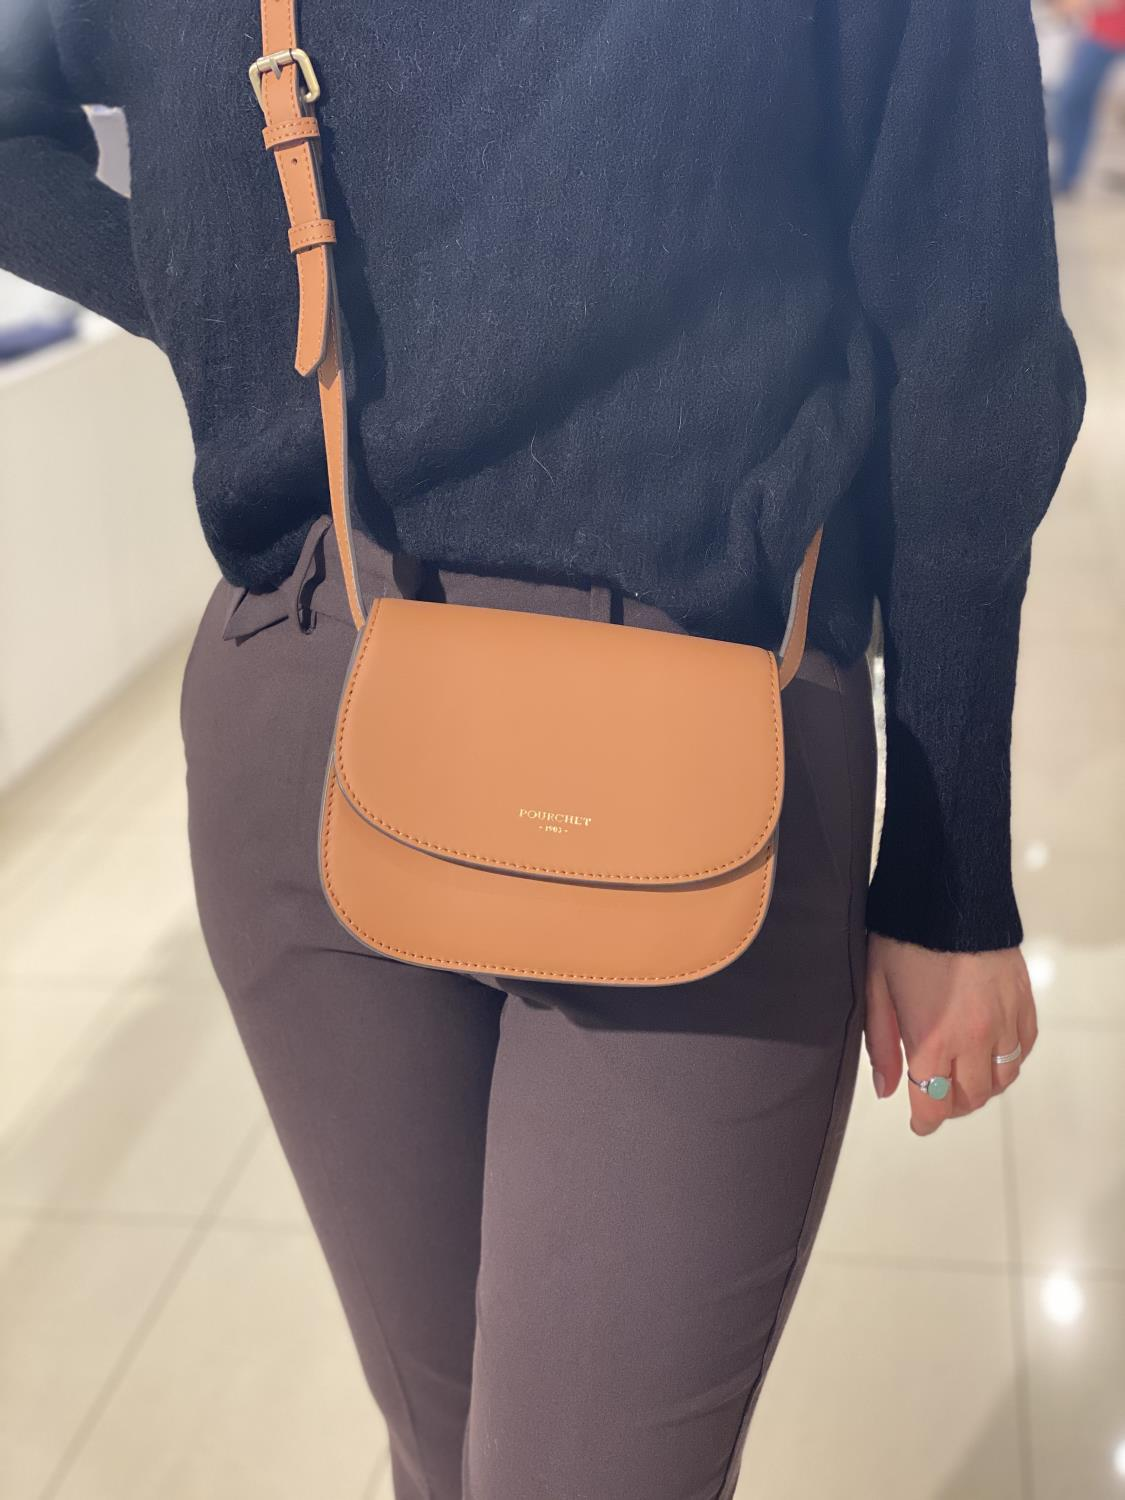 LEATHER FLAP SMALL CROSSBODY - POURCHET